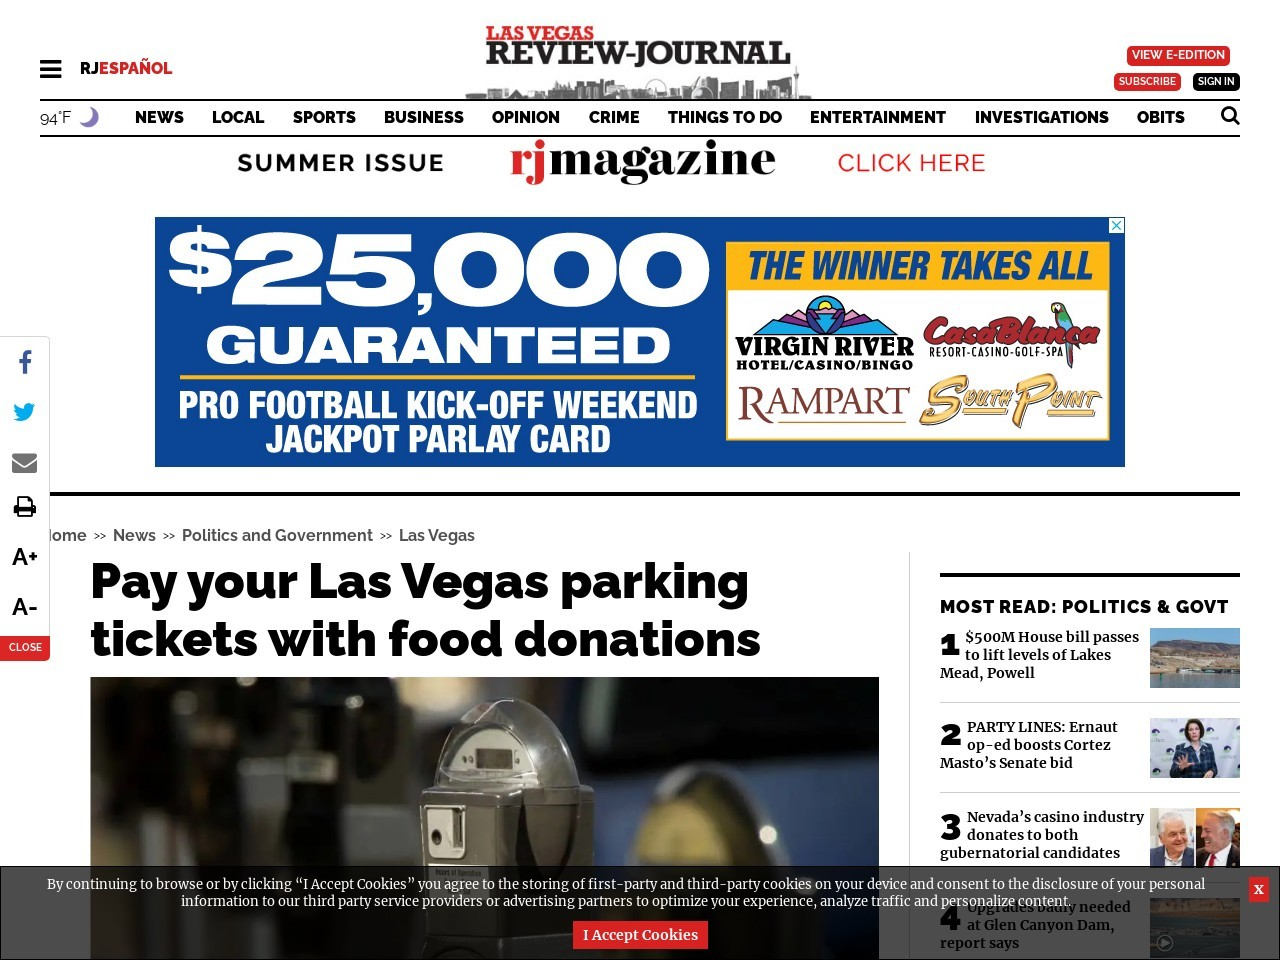 Las Vegas OKs paying for parking tickets with donated food